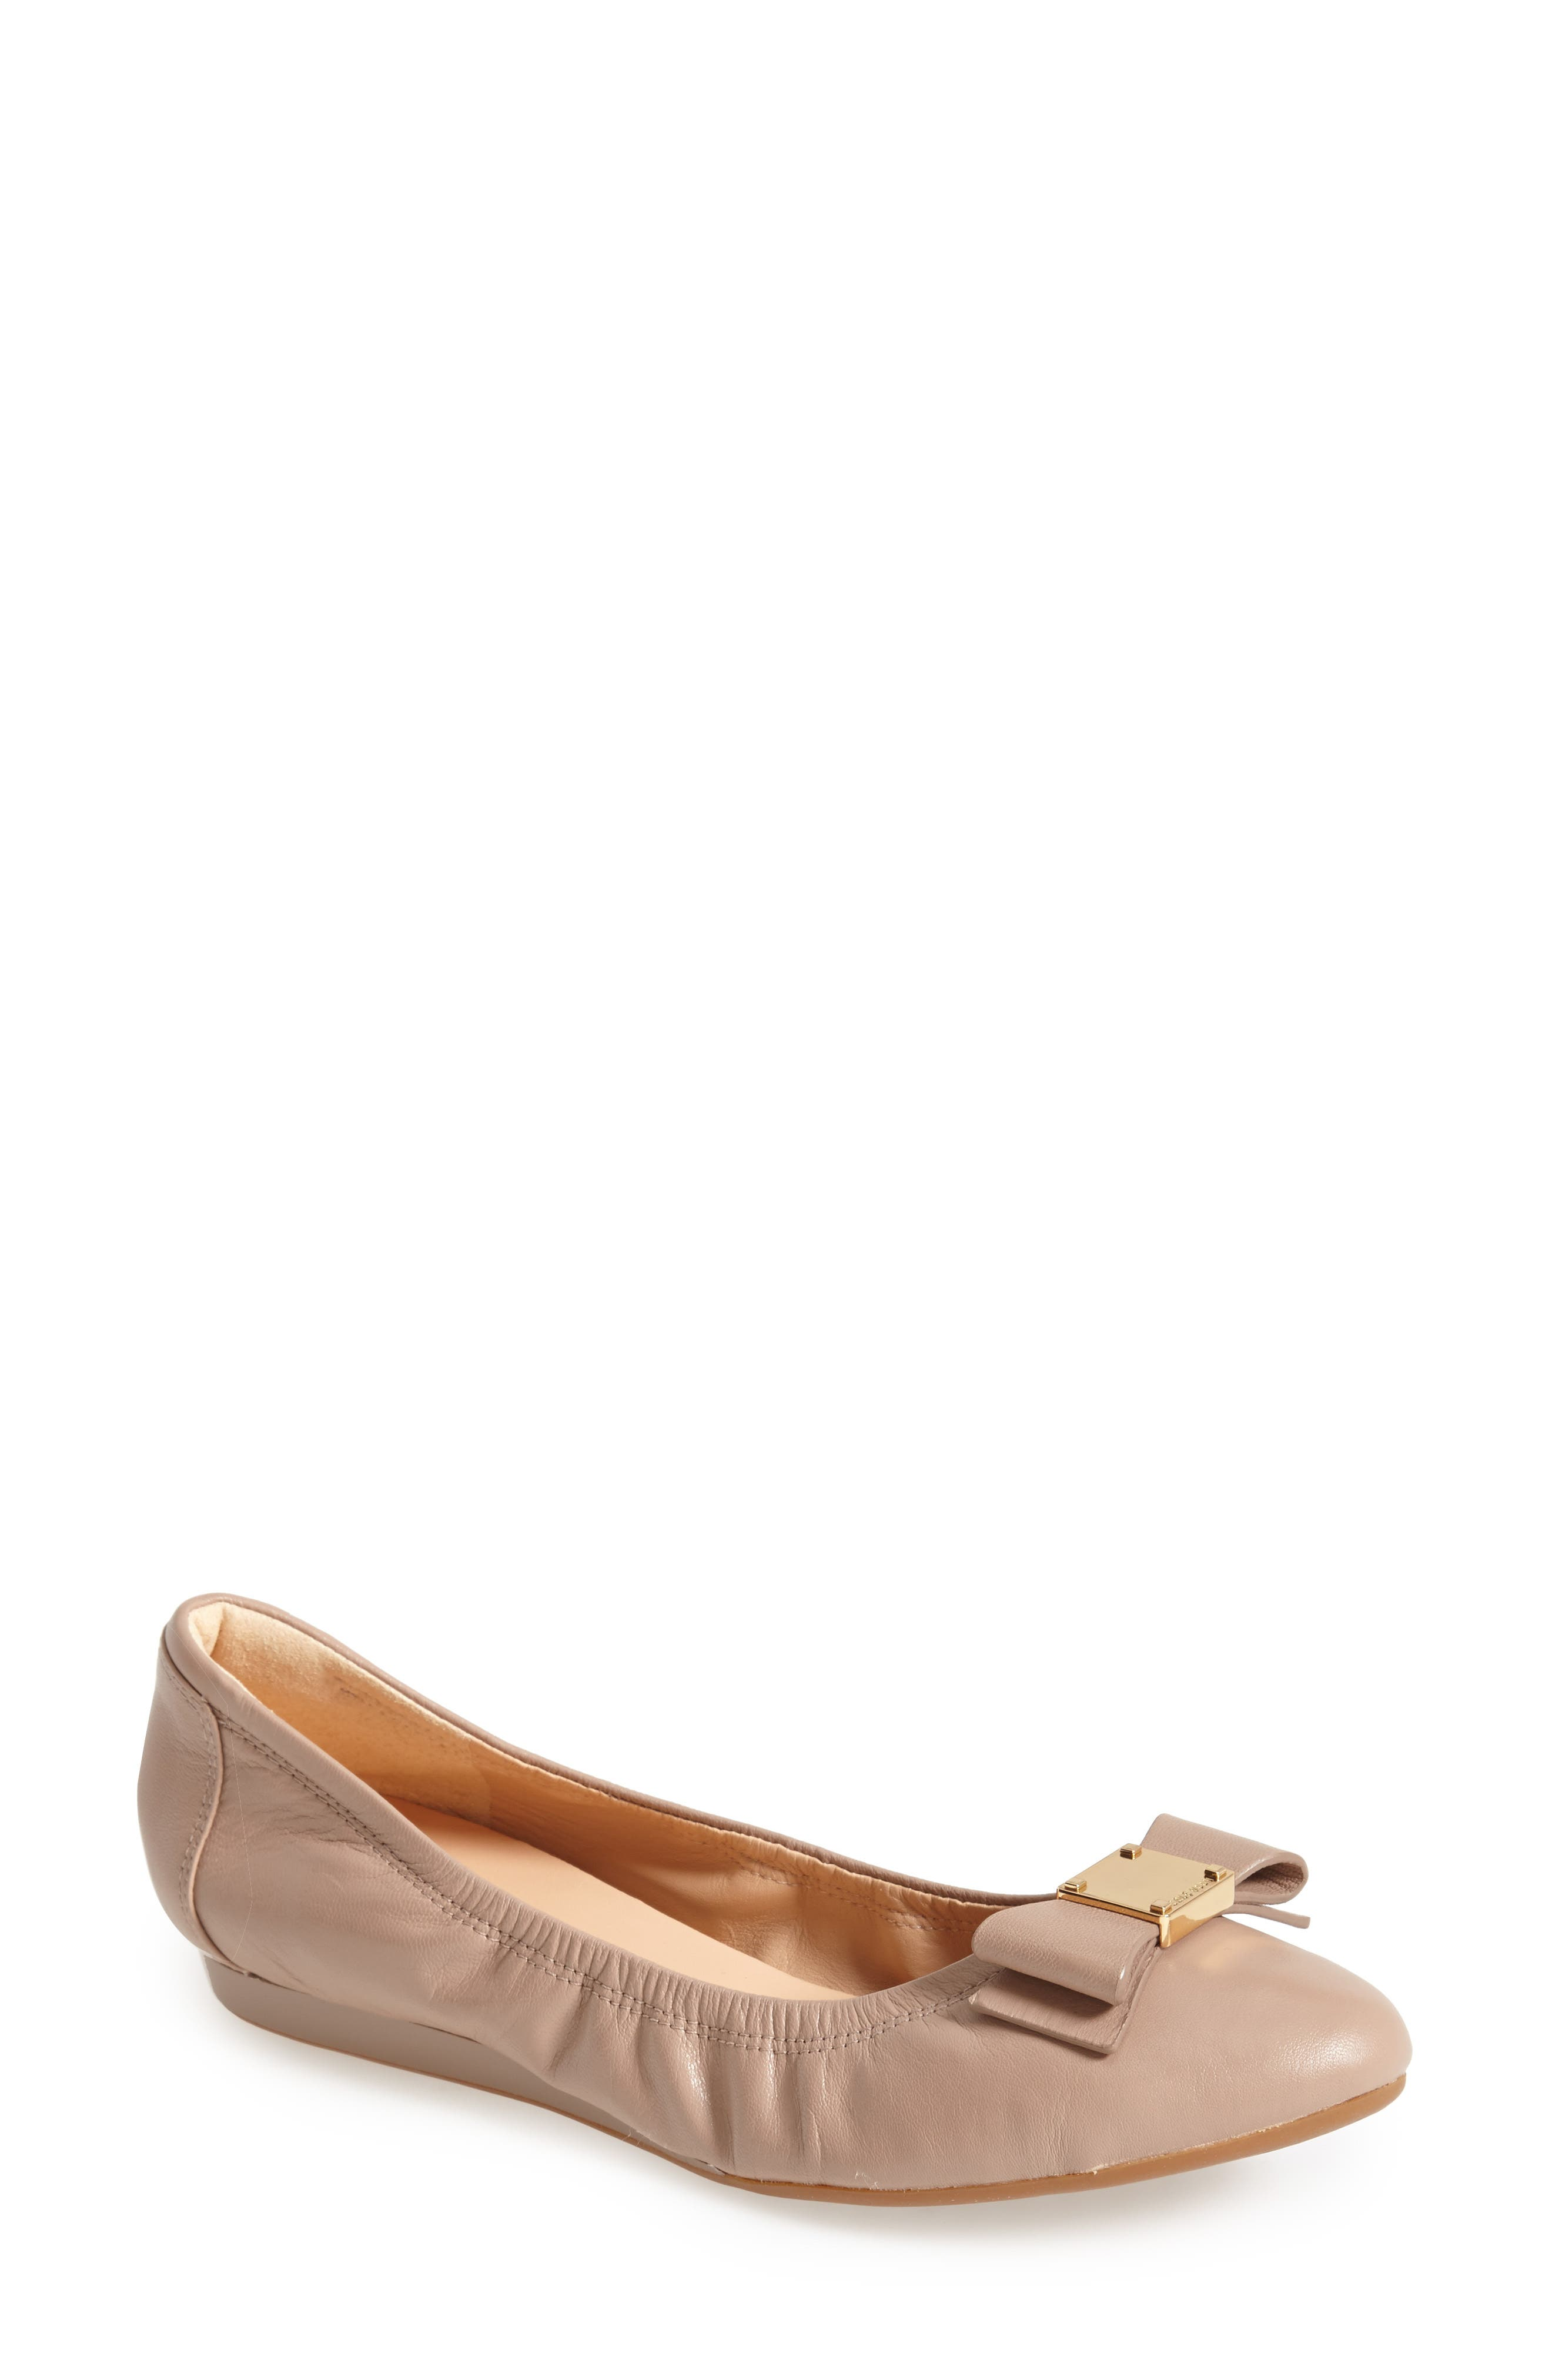 cole haan shoes women flats jewel-osco hours of operation 703097